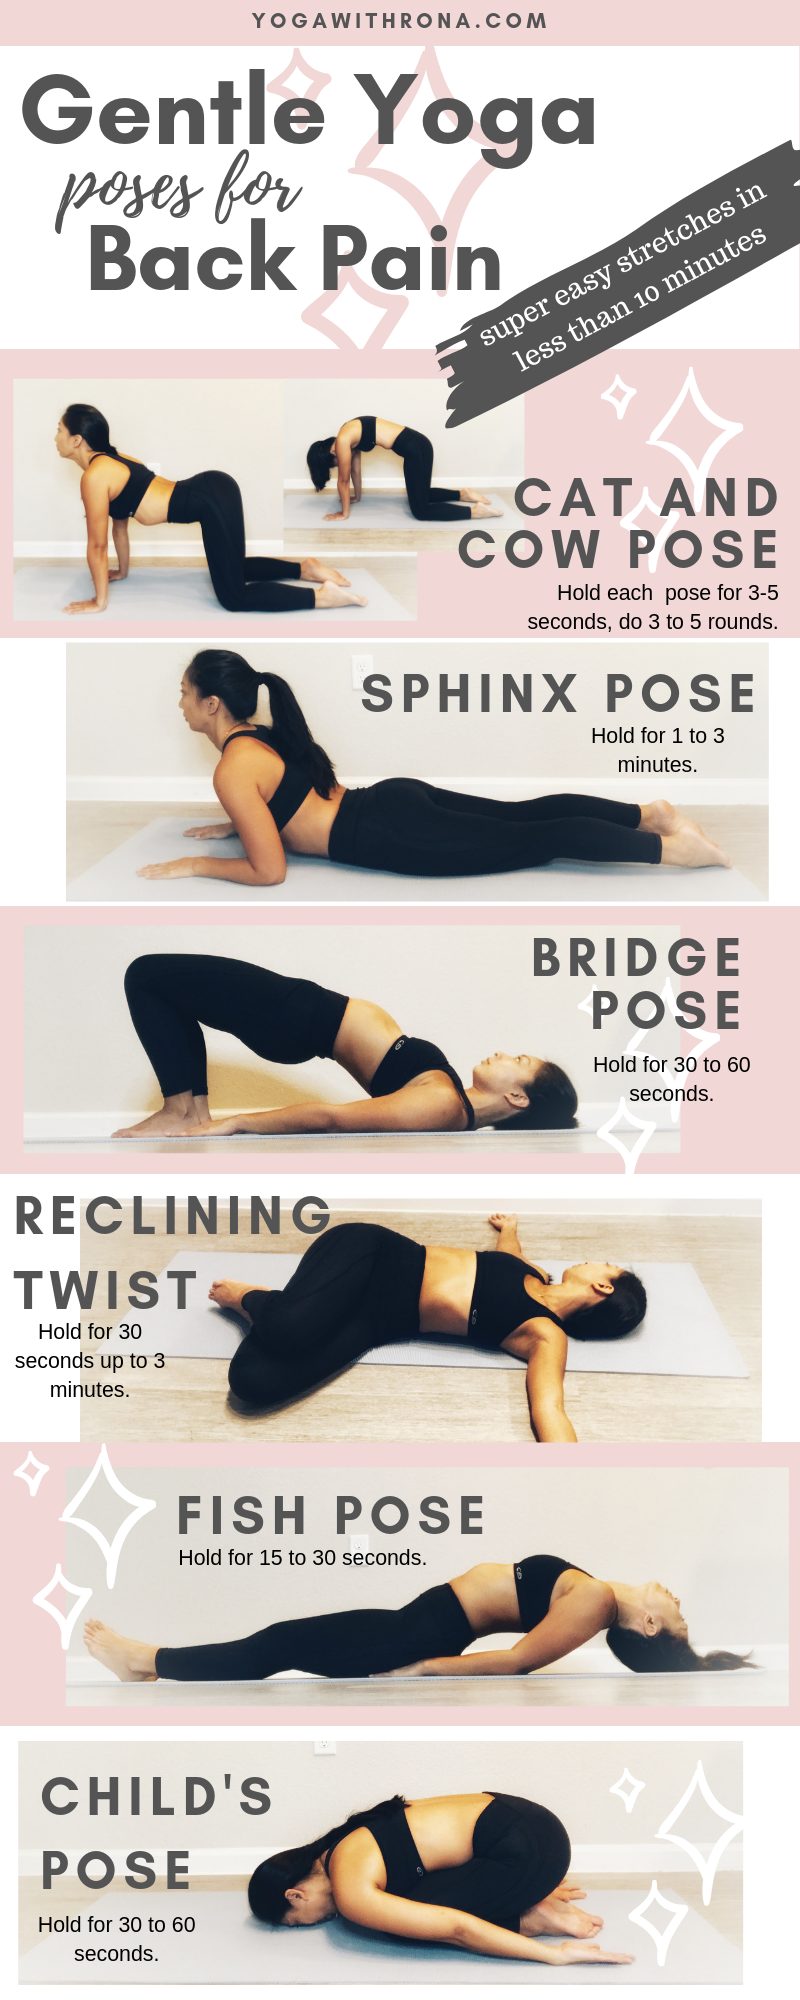 Gentle yoga poses for back pain  elephant journal